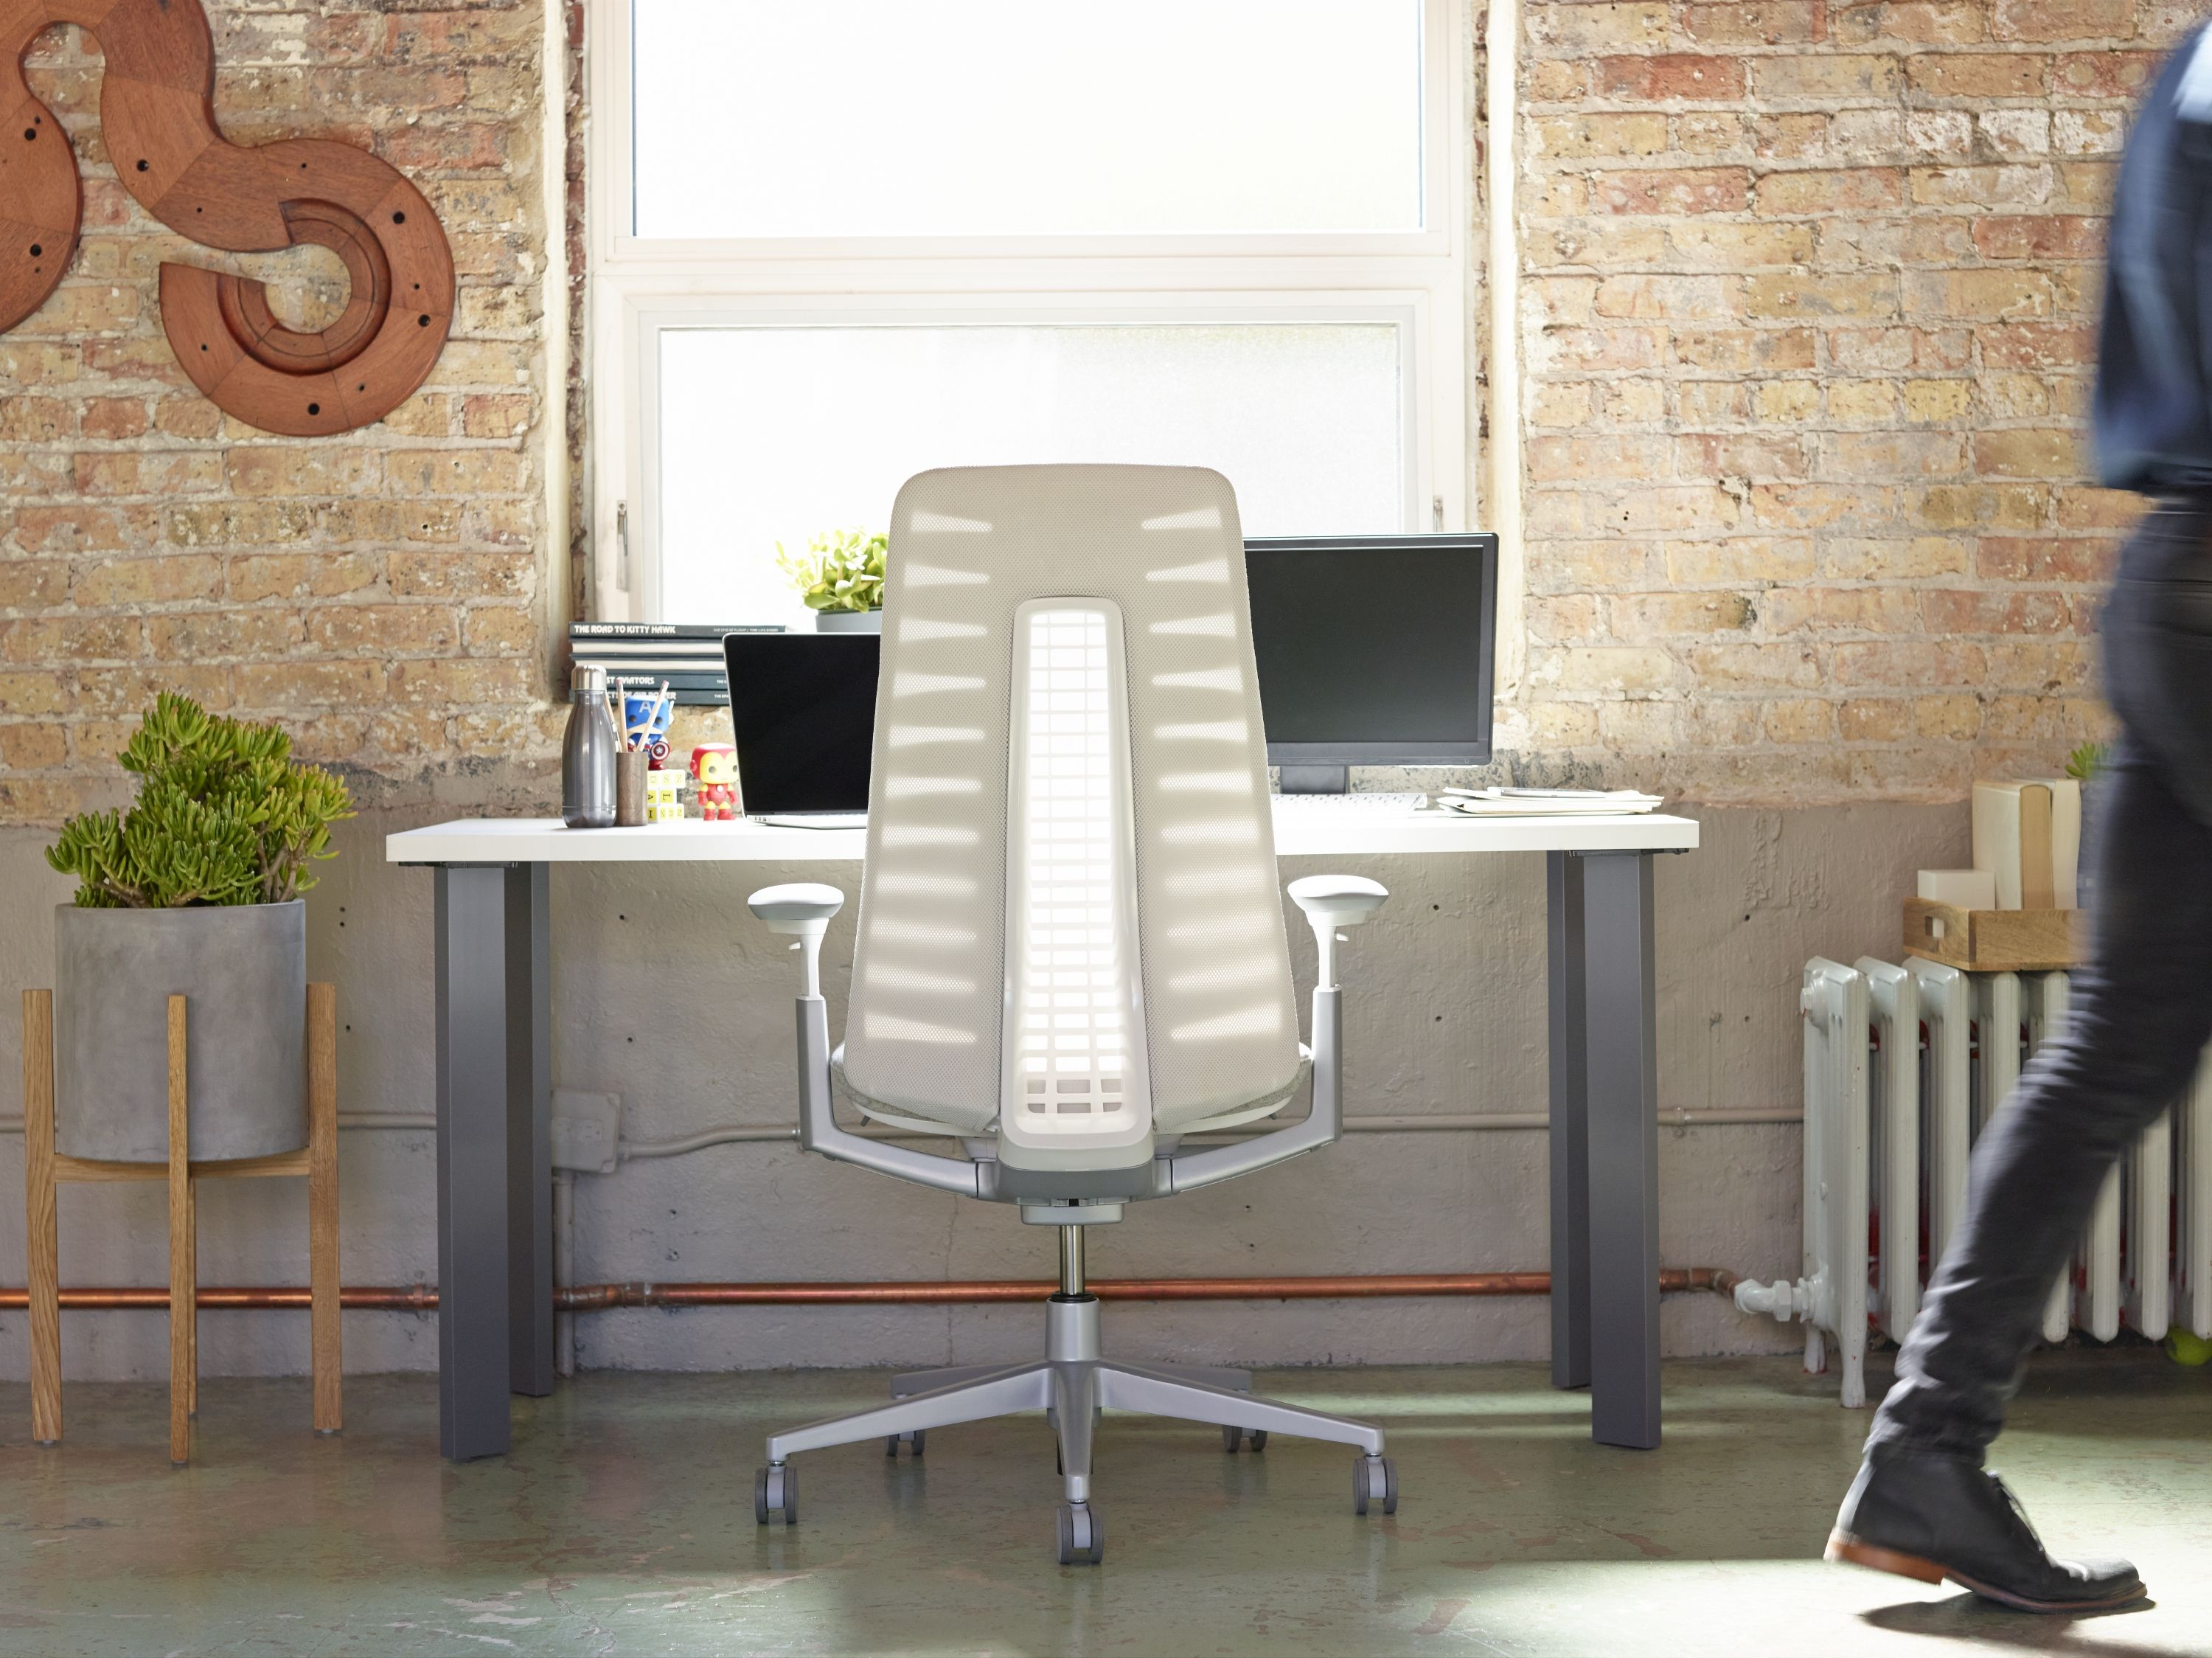 Introducing the Fern office #chair designed by Haworth Design